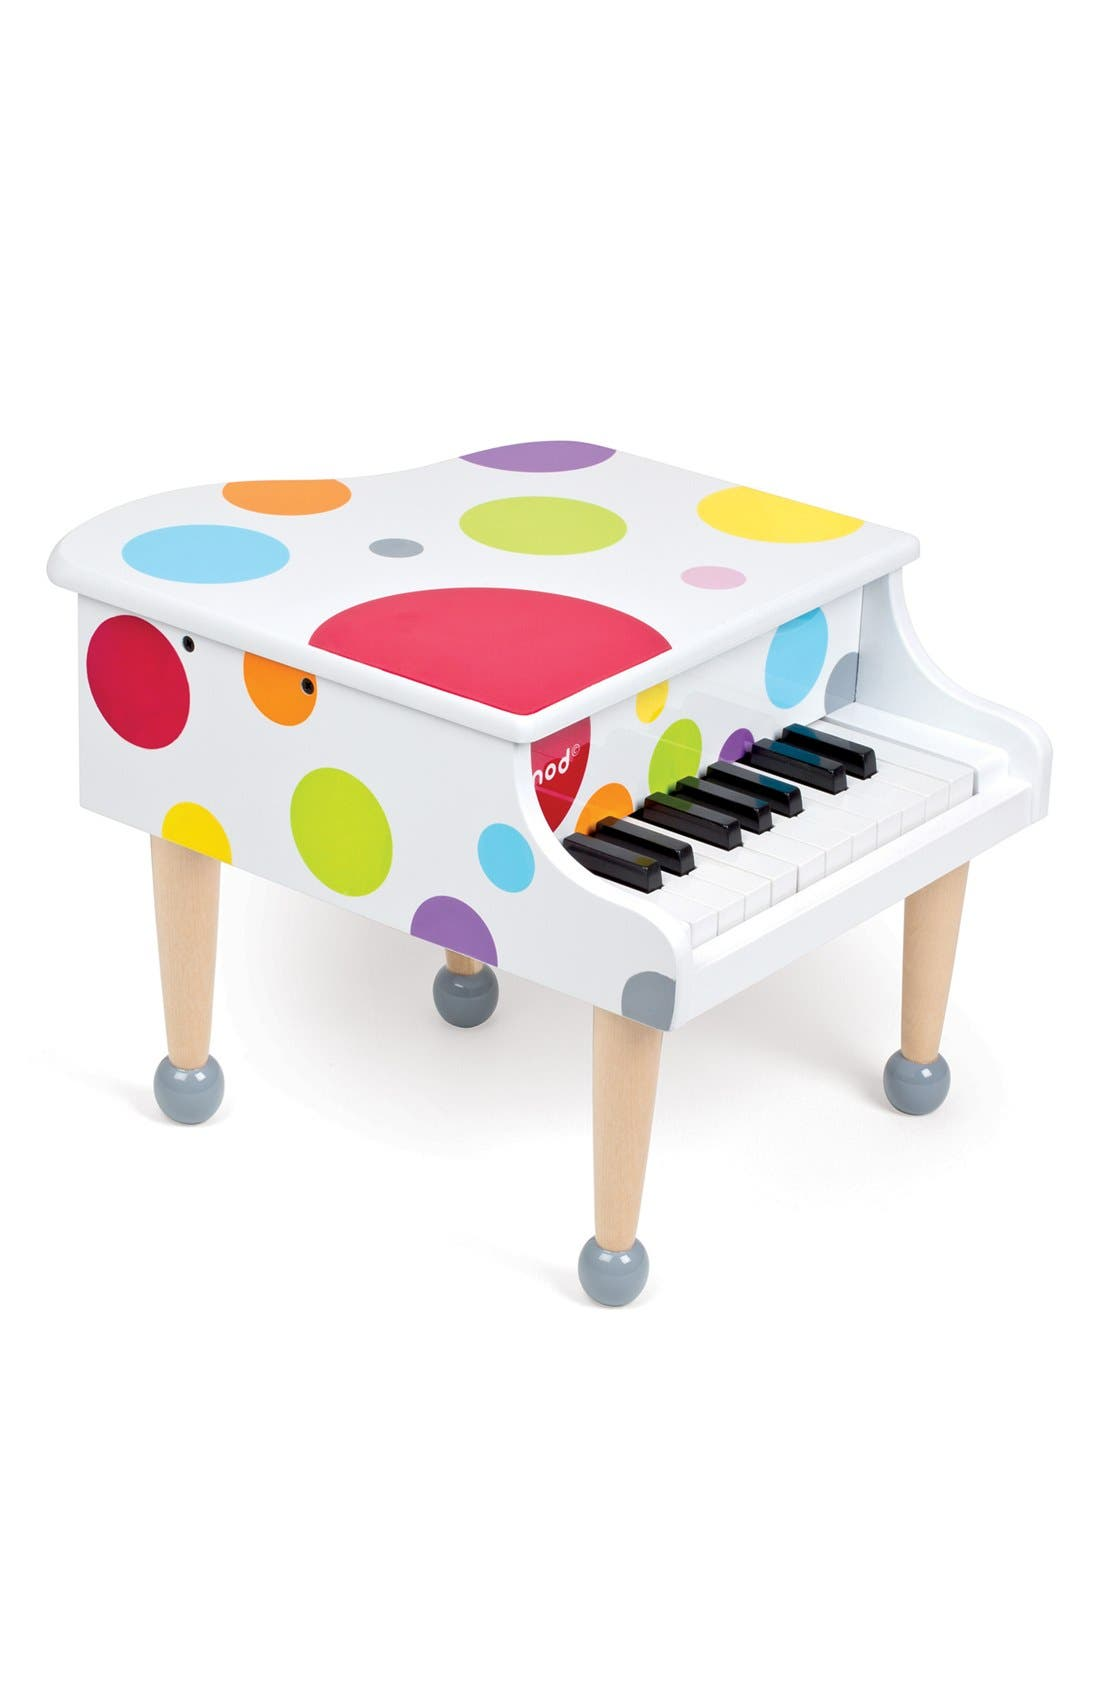 Alternate Image 1 Selected - Janod 'Confetti' Grand Piano Play Set